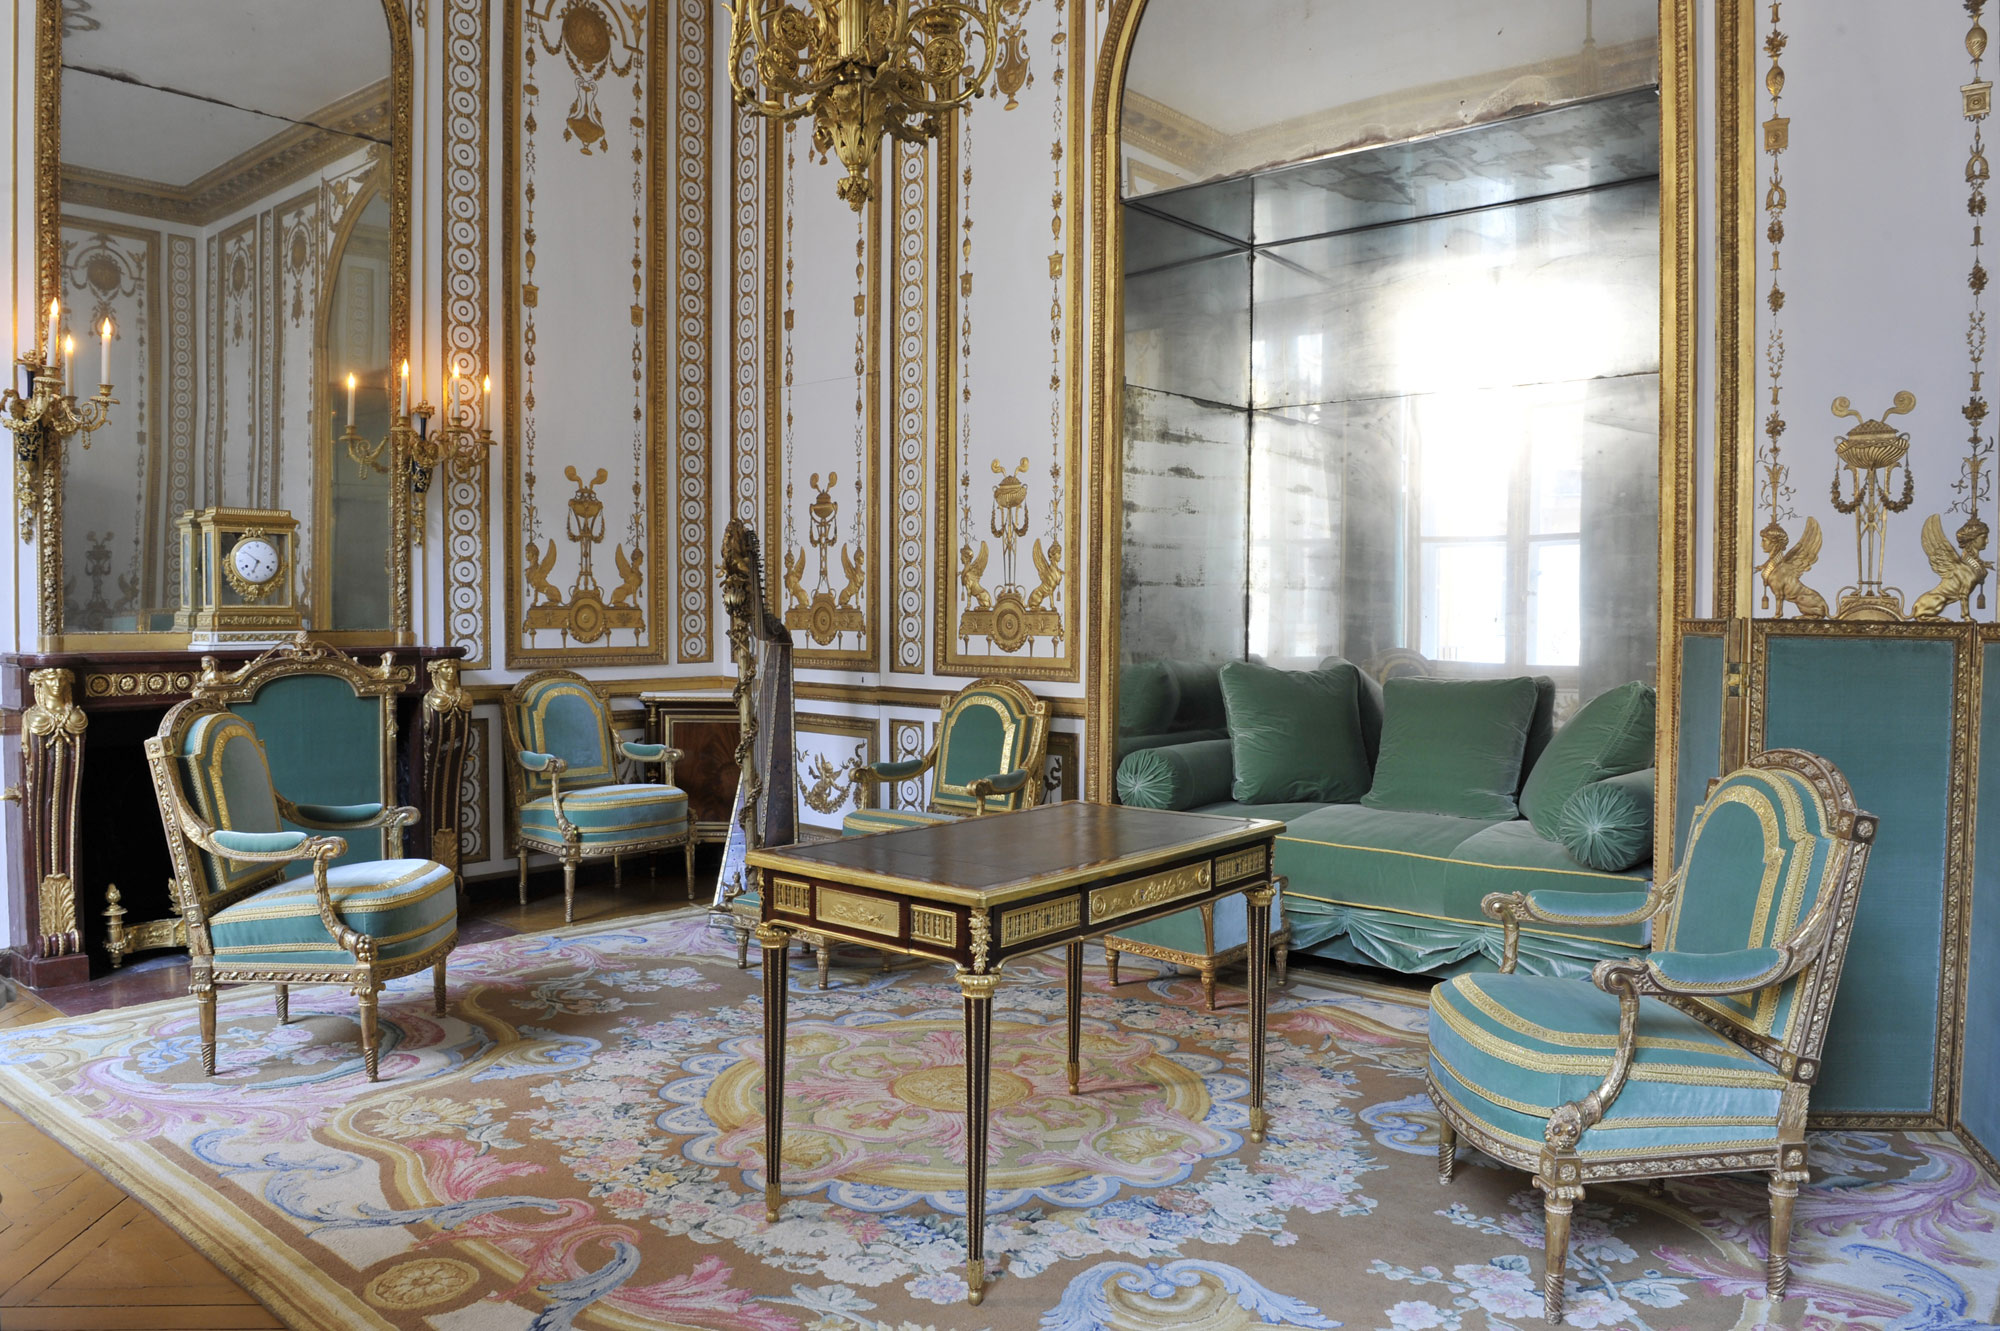 Merveilleux Present Day View Of The Cabinet Doré In The Interior Apartment Of The  Queen,. Cabinet Doré Of Marie Antoinette